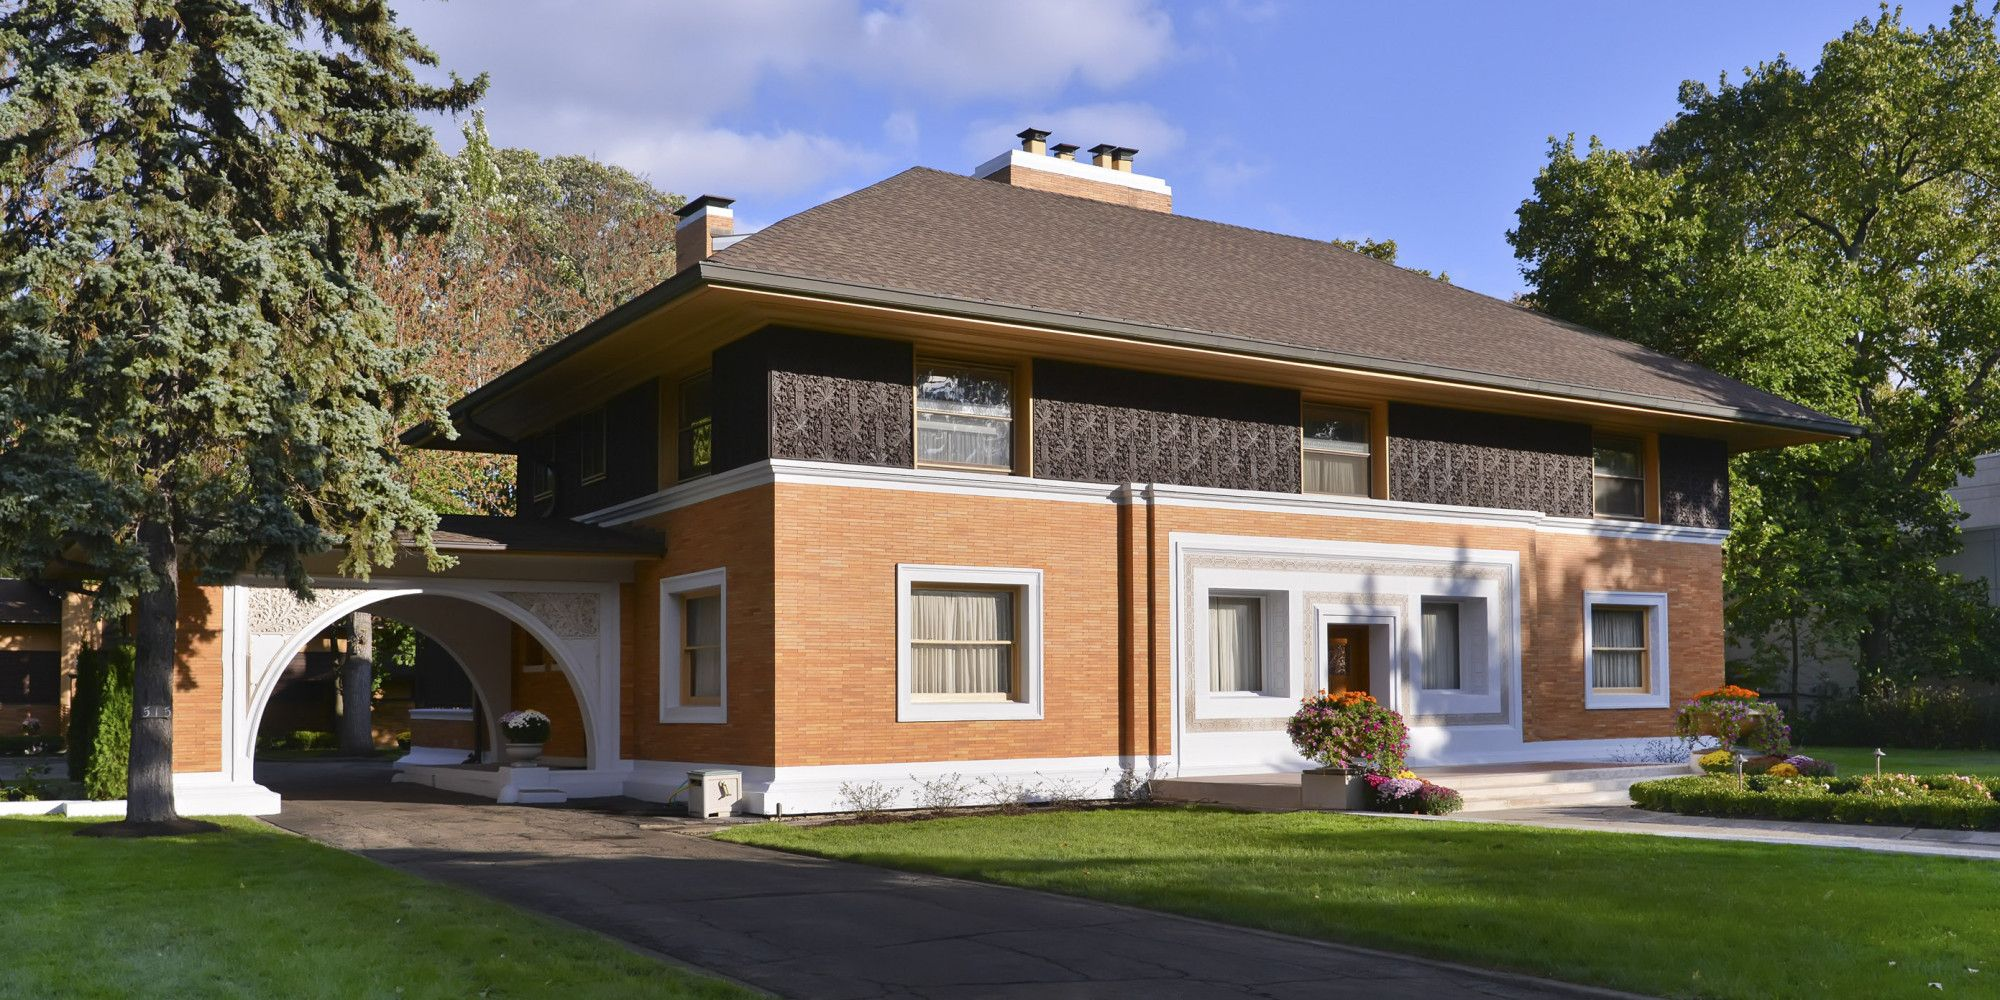 f l wright winslow house near chicago 1894 frank lloyd it was the first home legendary architect frank lloyd wright designed after quitting his job at his mentor louis sullivan s firm and going off on this ow